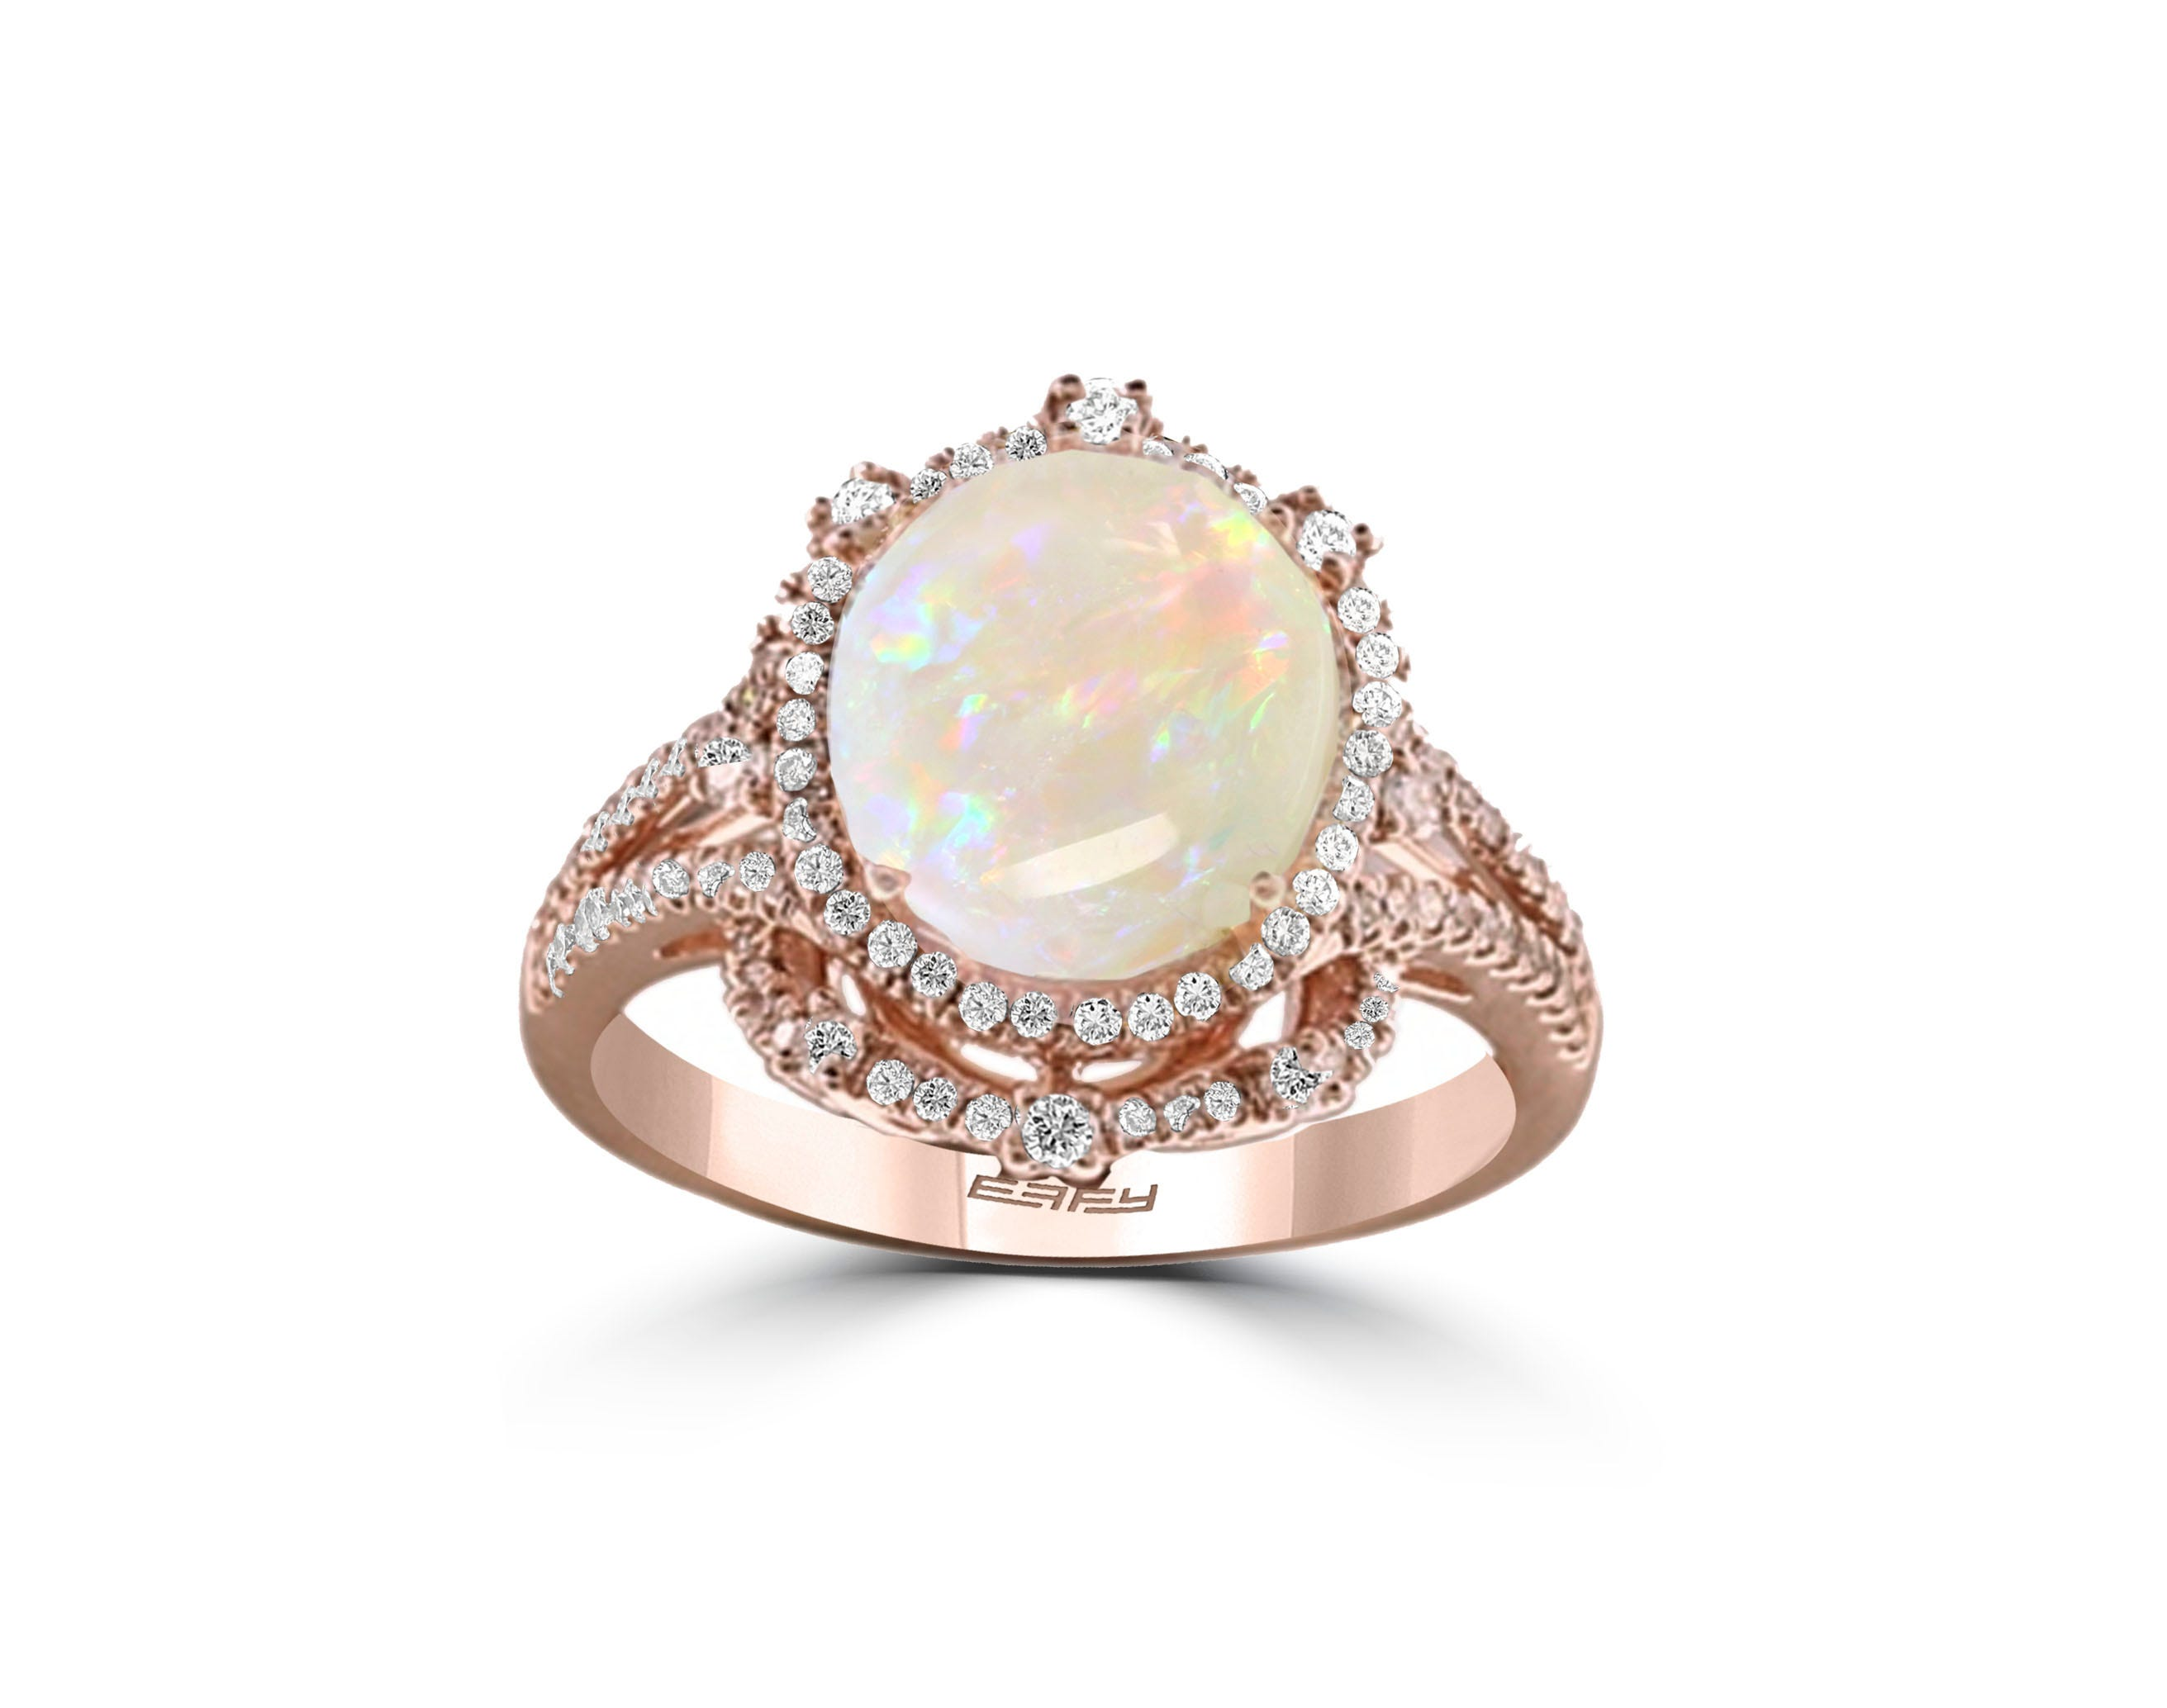 EFFY Oval Opal & Diamond Halo Ring in 14k Rose Gold